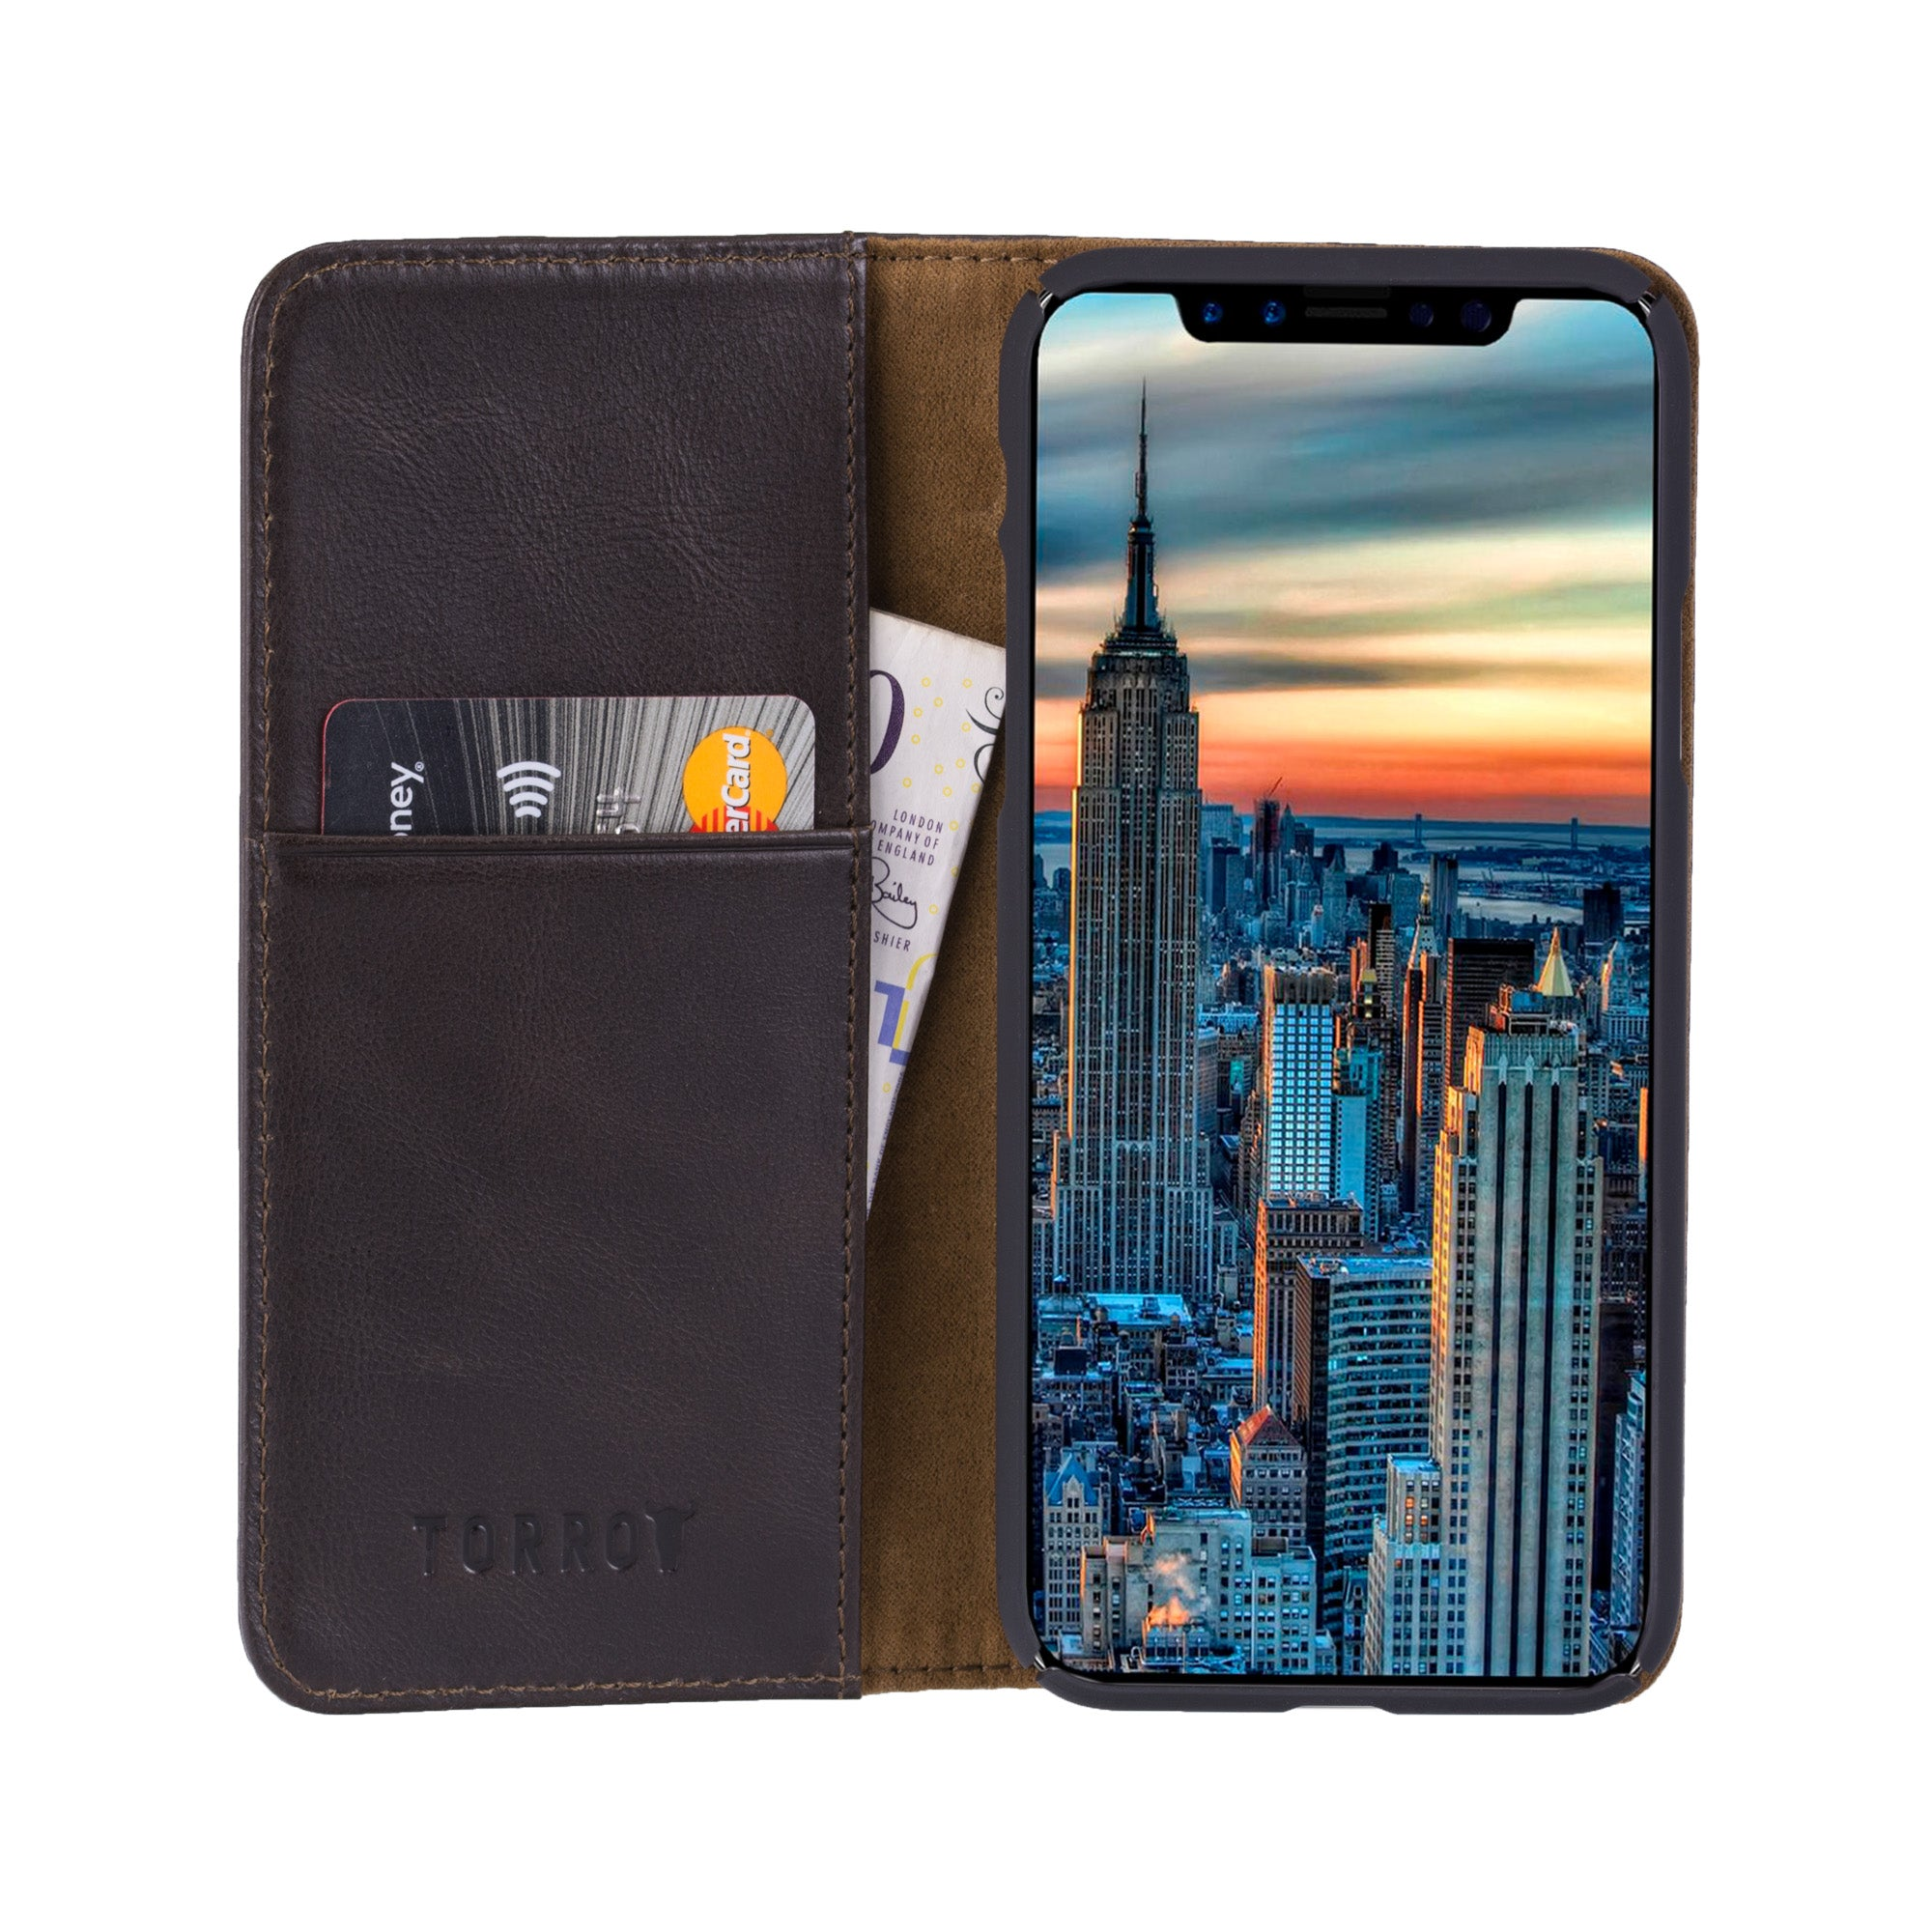 buy online 16a89 c7029 iPhone X / iPhone 10 Black Italian Leather Case, with Stand function